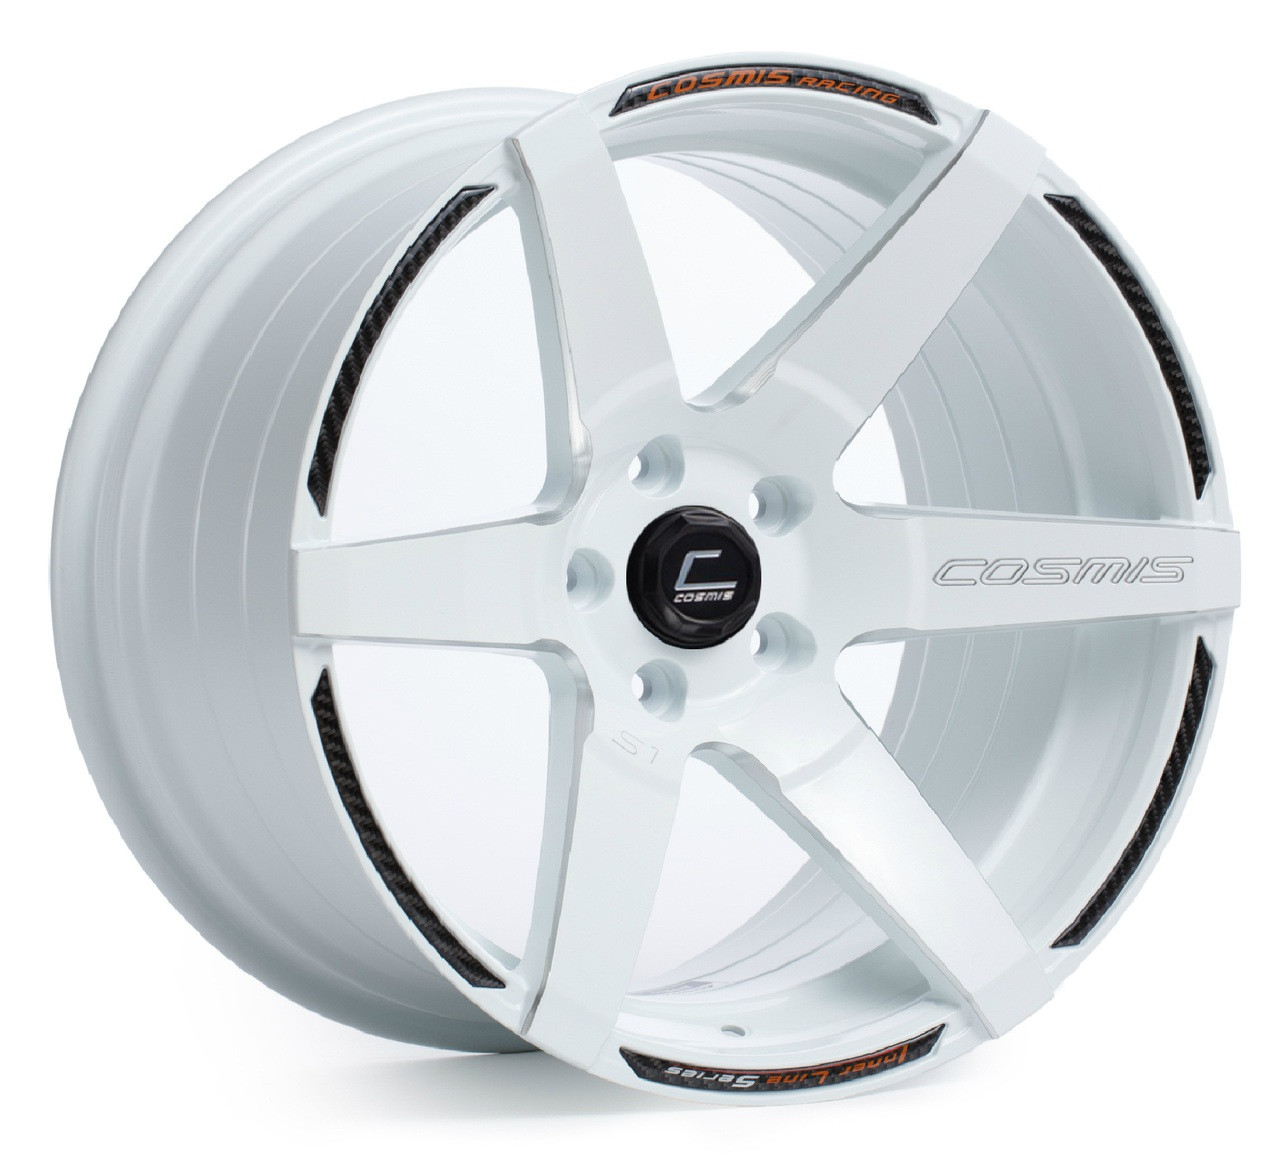 Cosmis Racing S1 Wheel in White with Milled Spokes